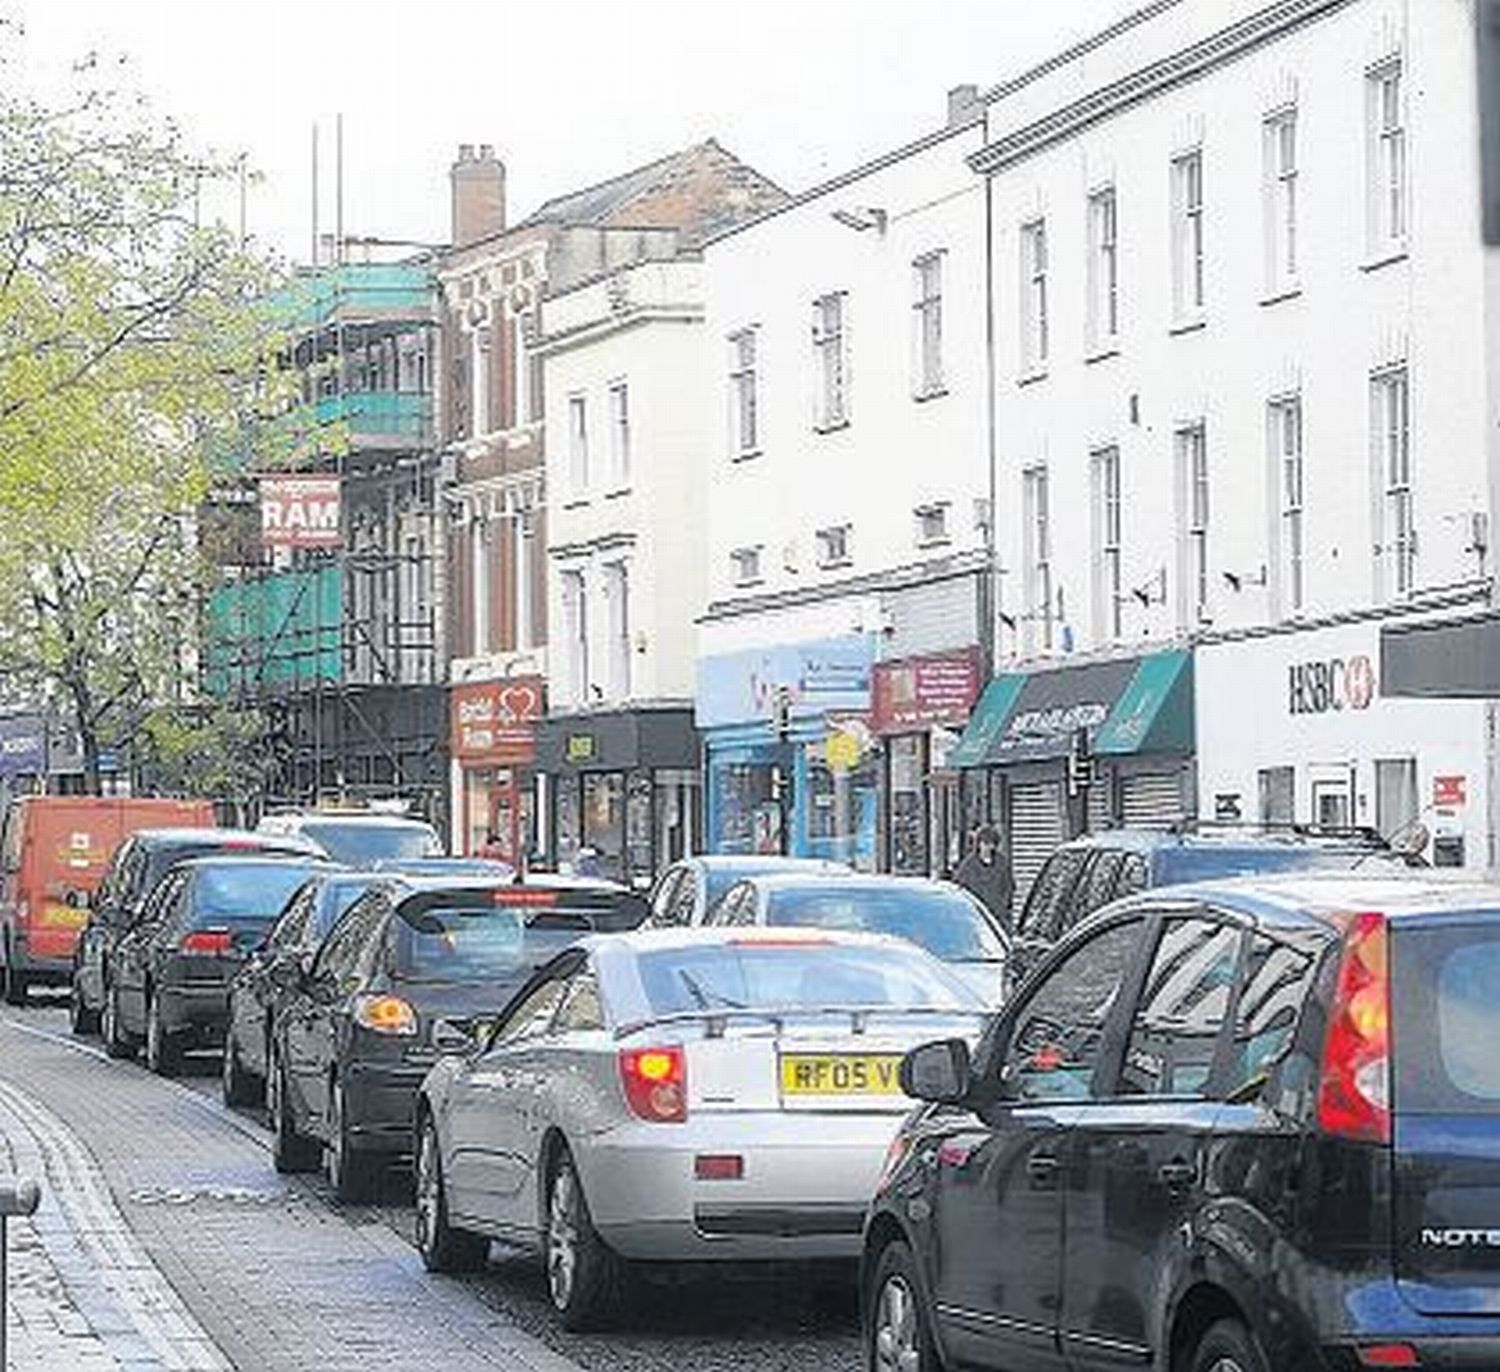 Traffic in Taunton town centre.